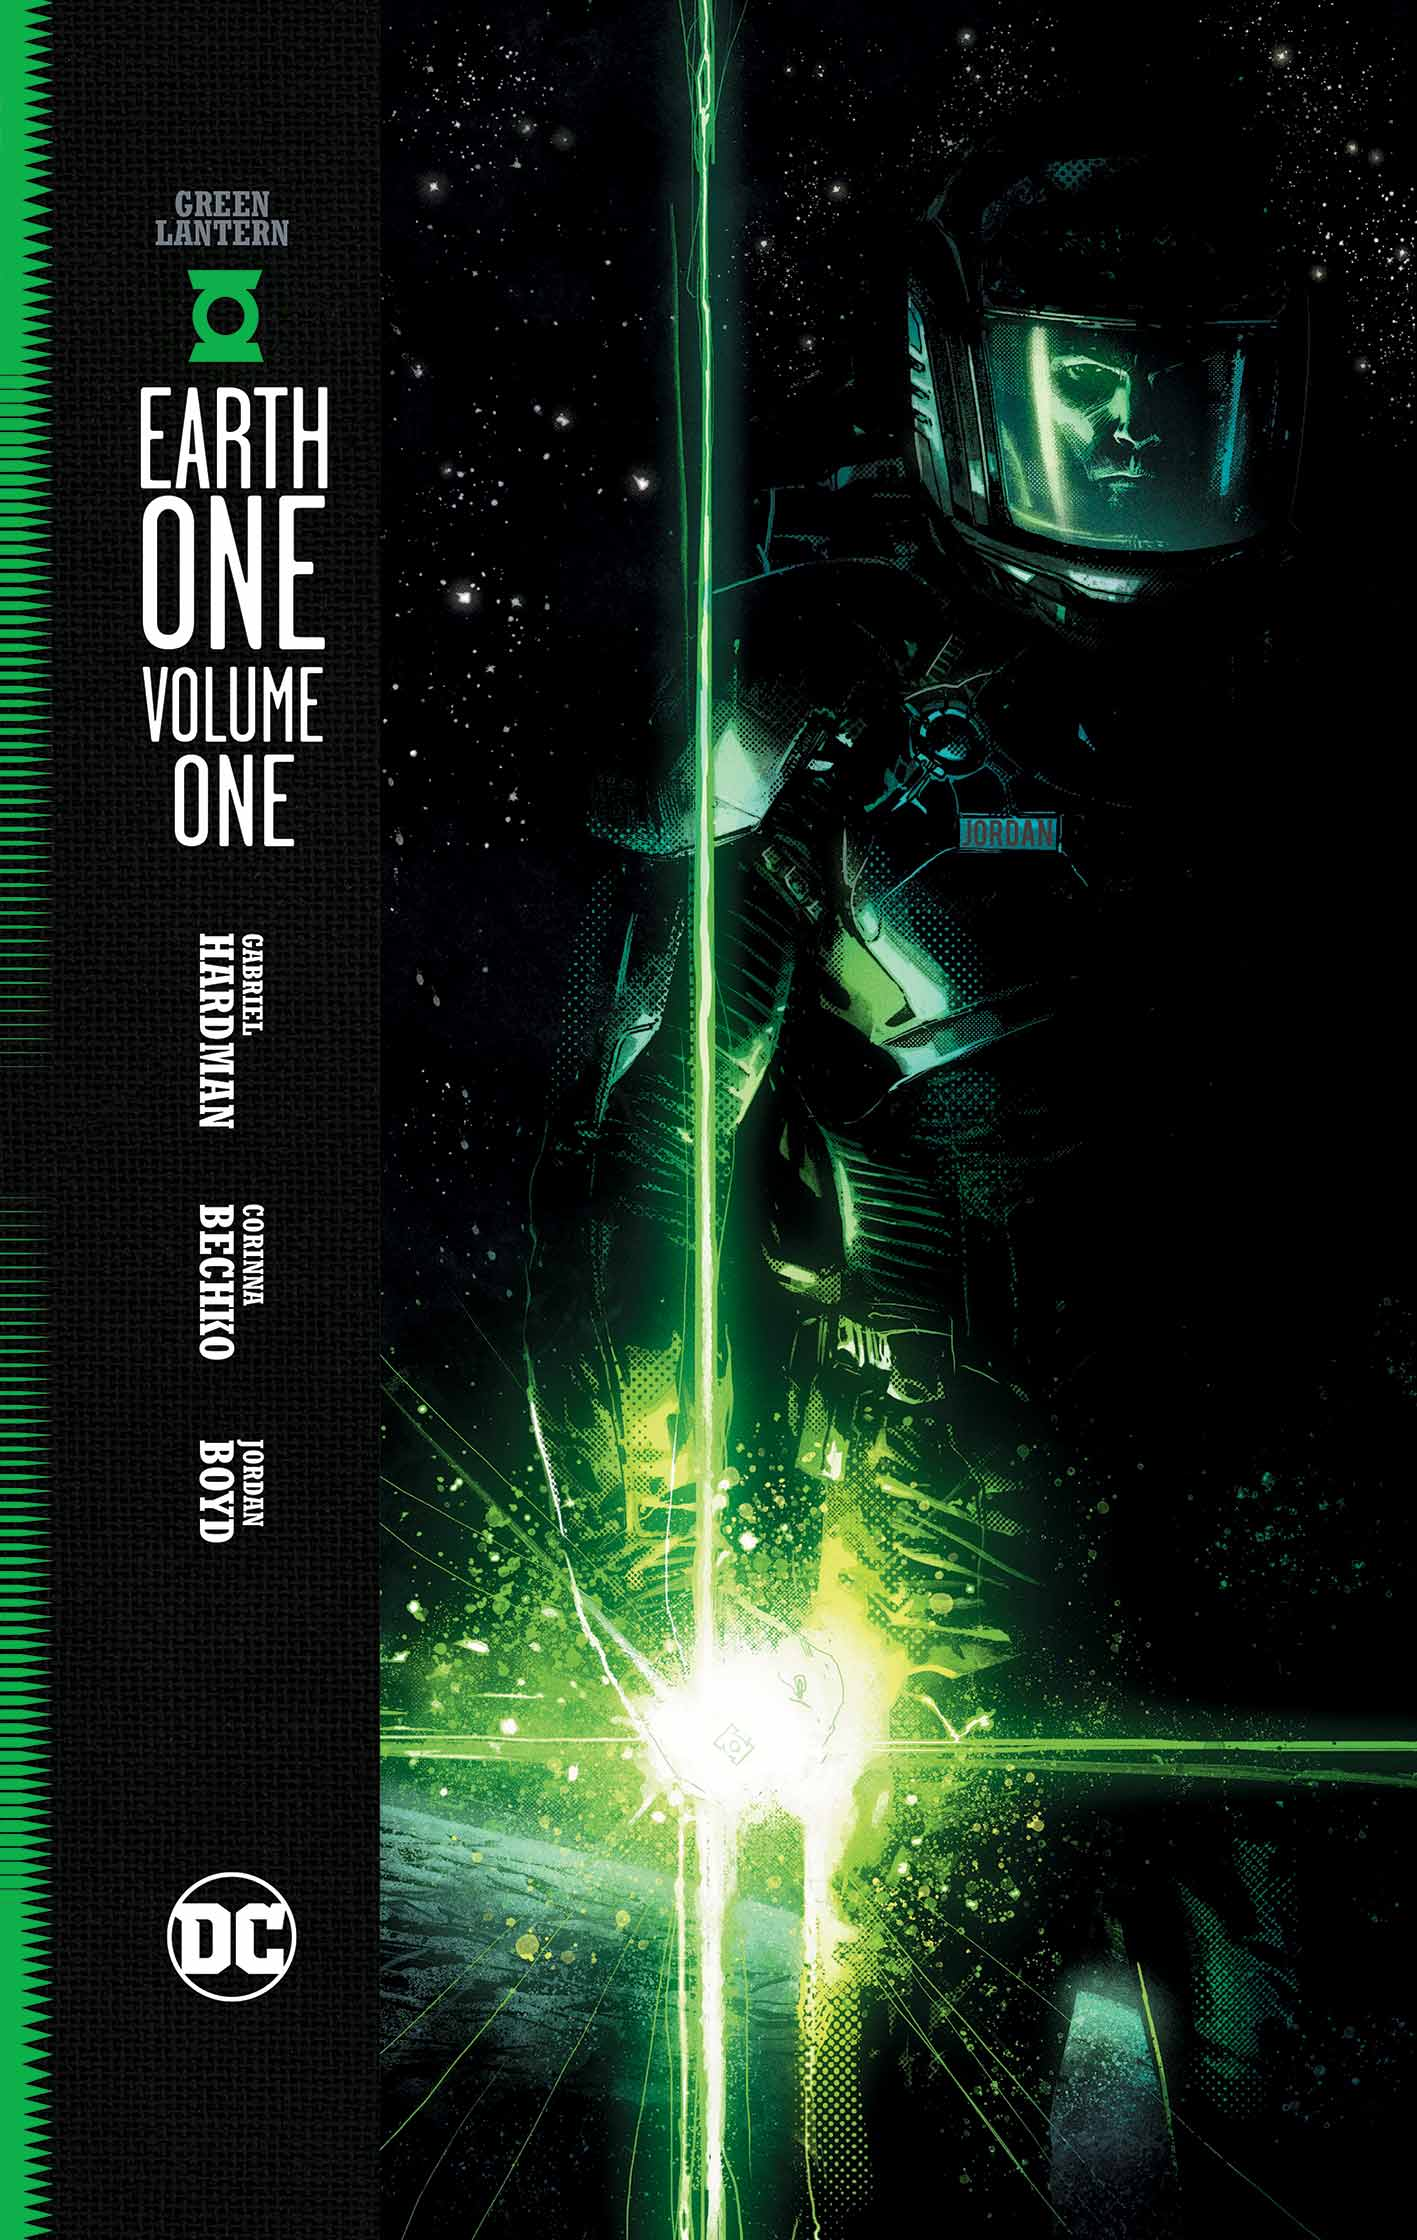 Green Lantern: Earth One Vol 1 1